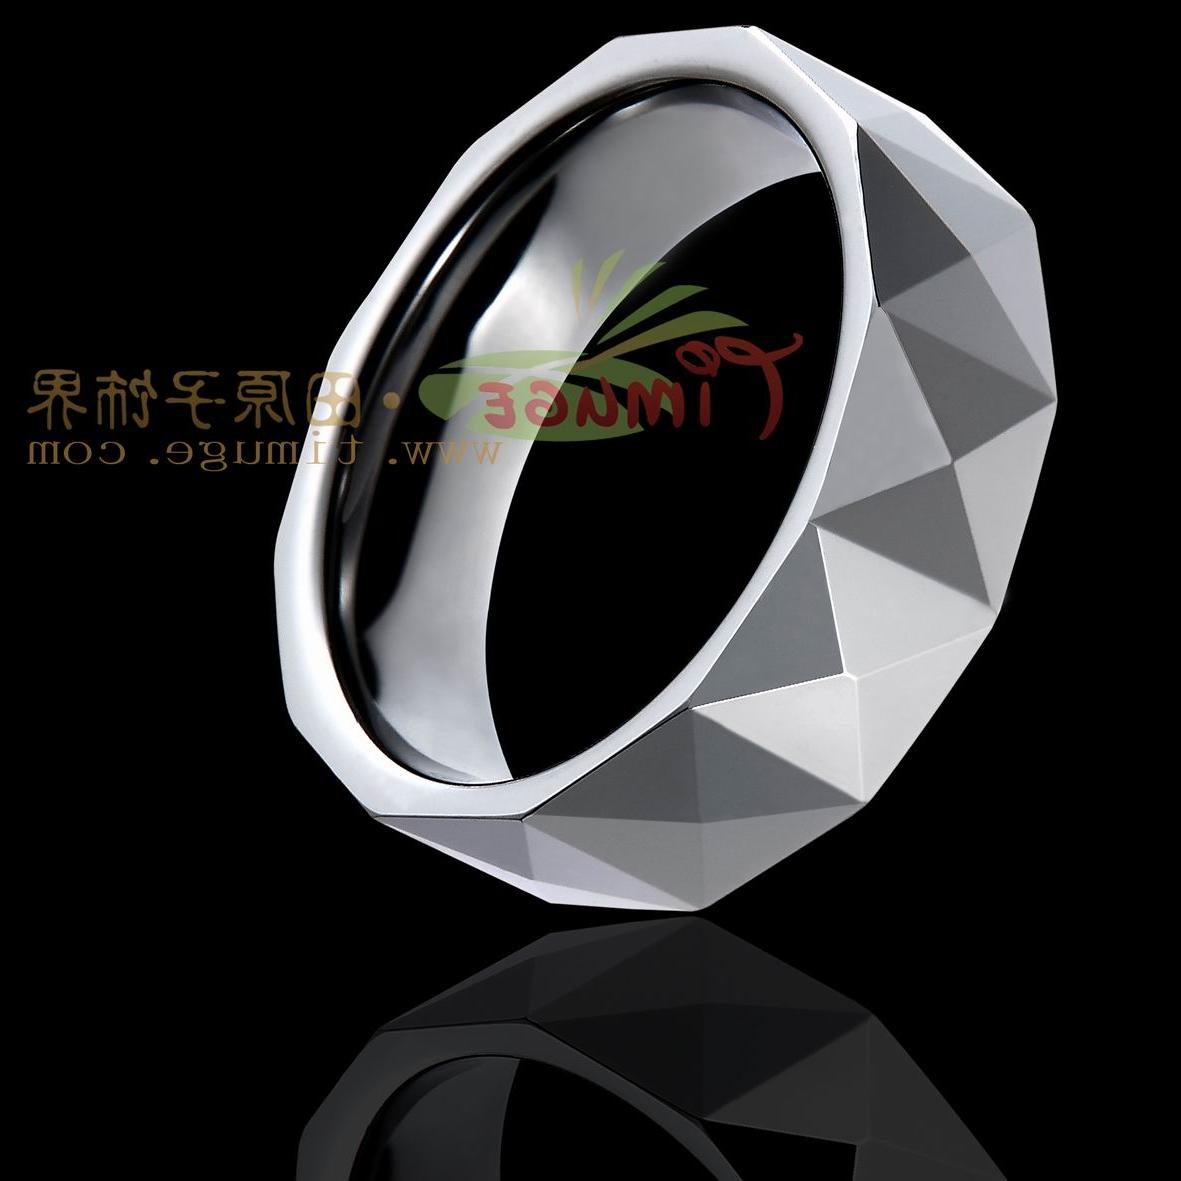 We Are Professional Manufacturer In Tungsten Carbide And Ceramic Rings,